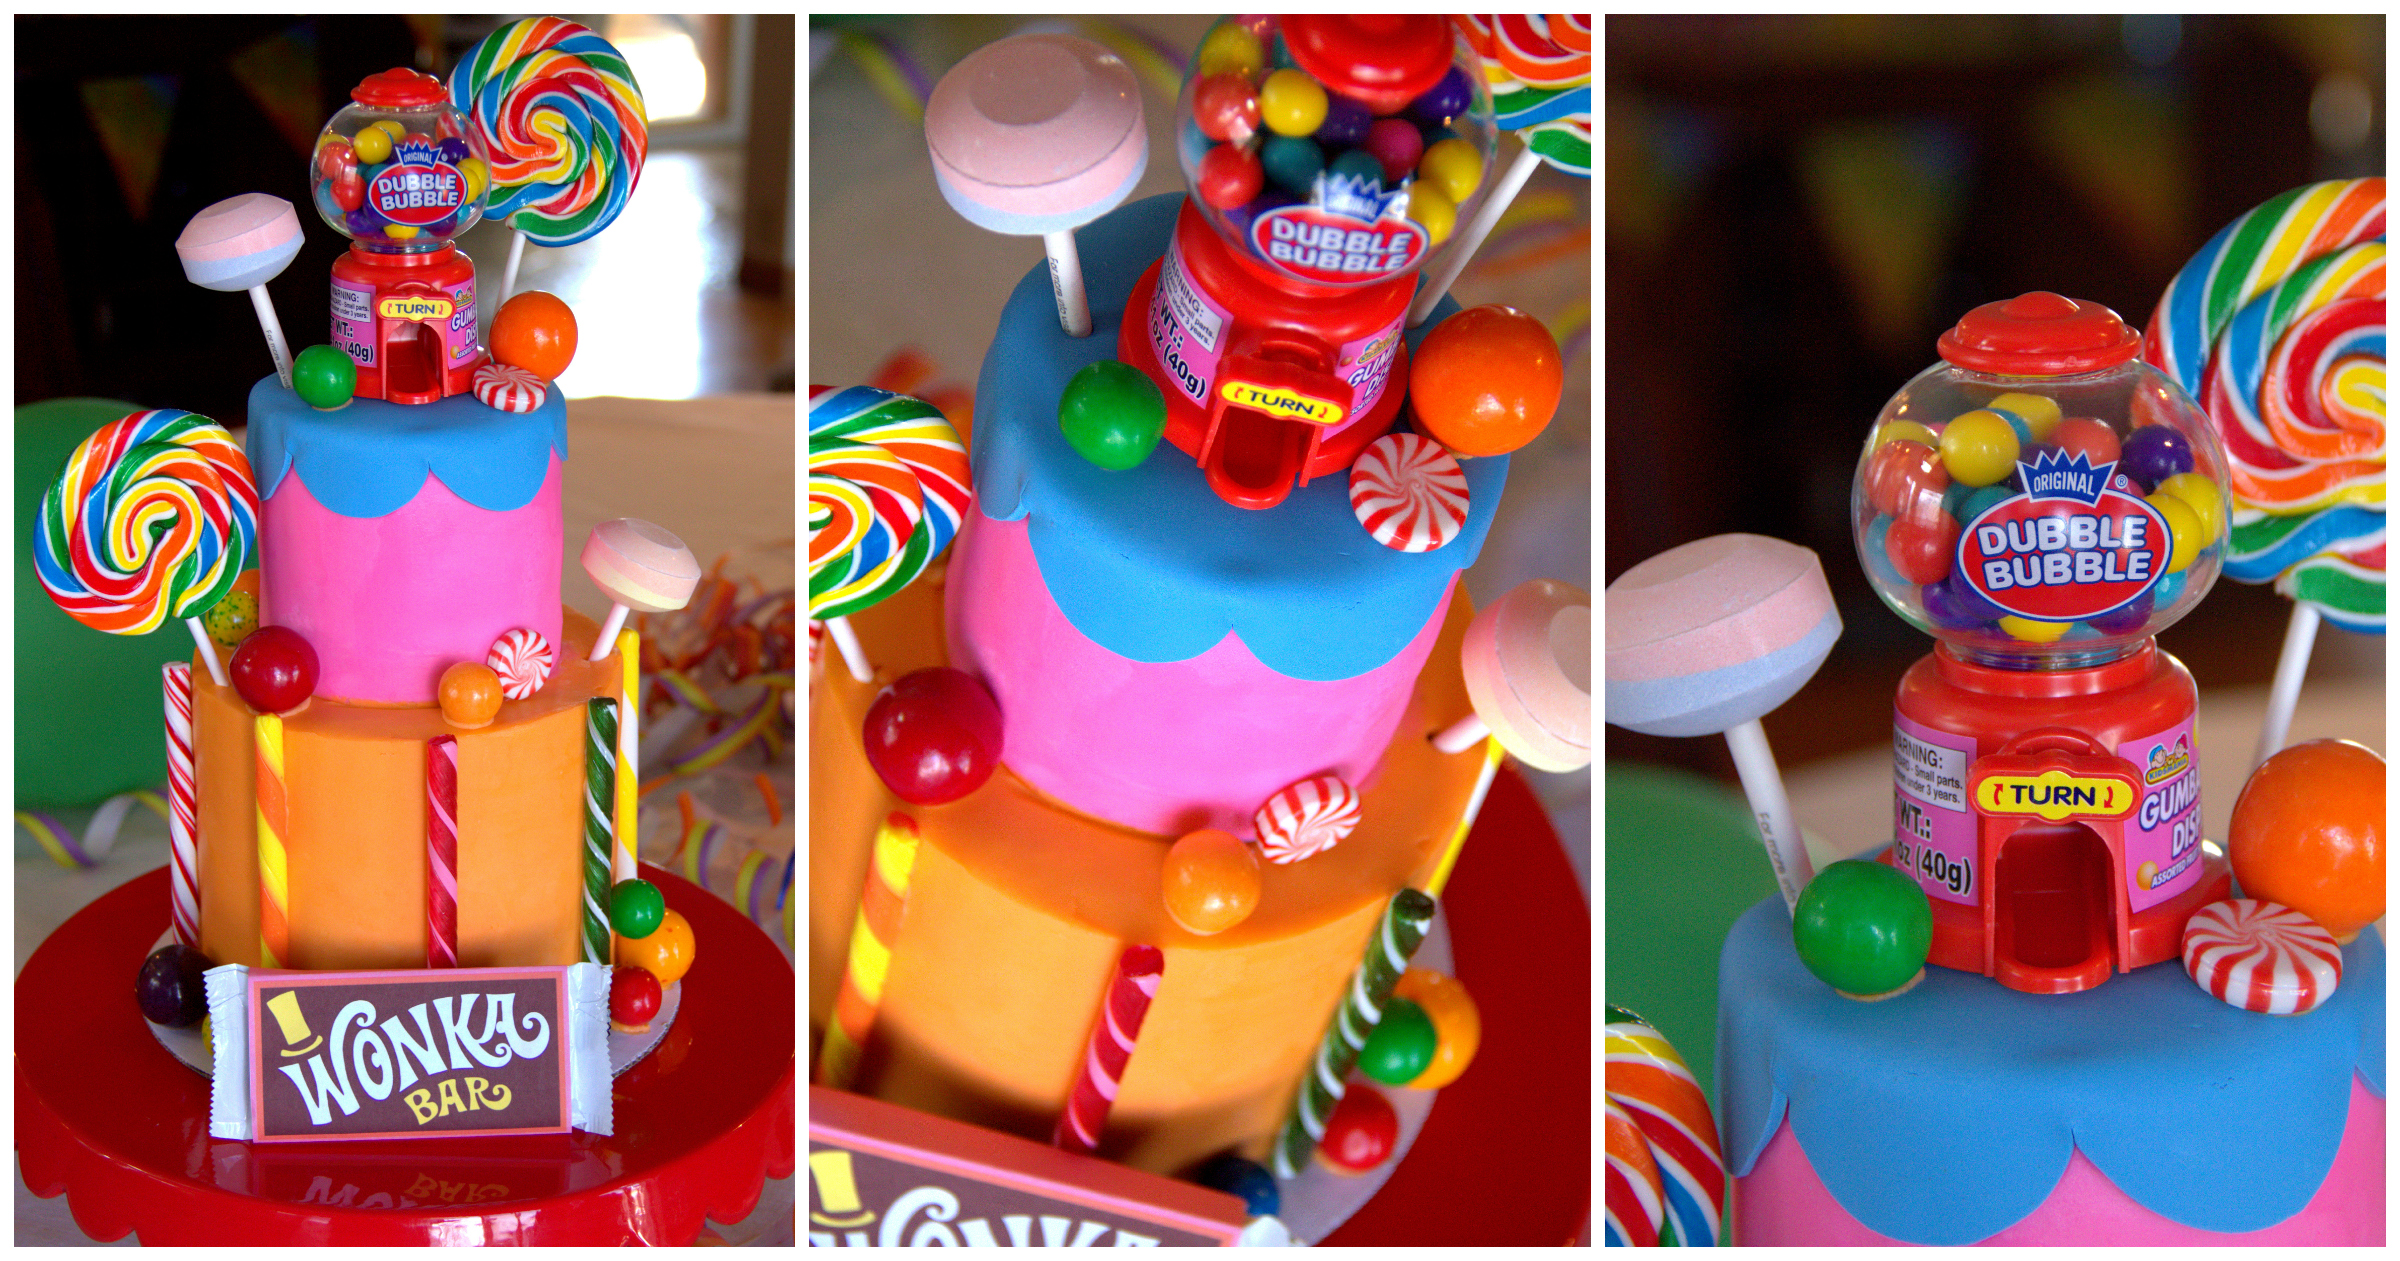 Birthday Cake3 - Willy Wonka Cake.jpg